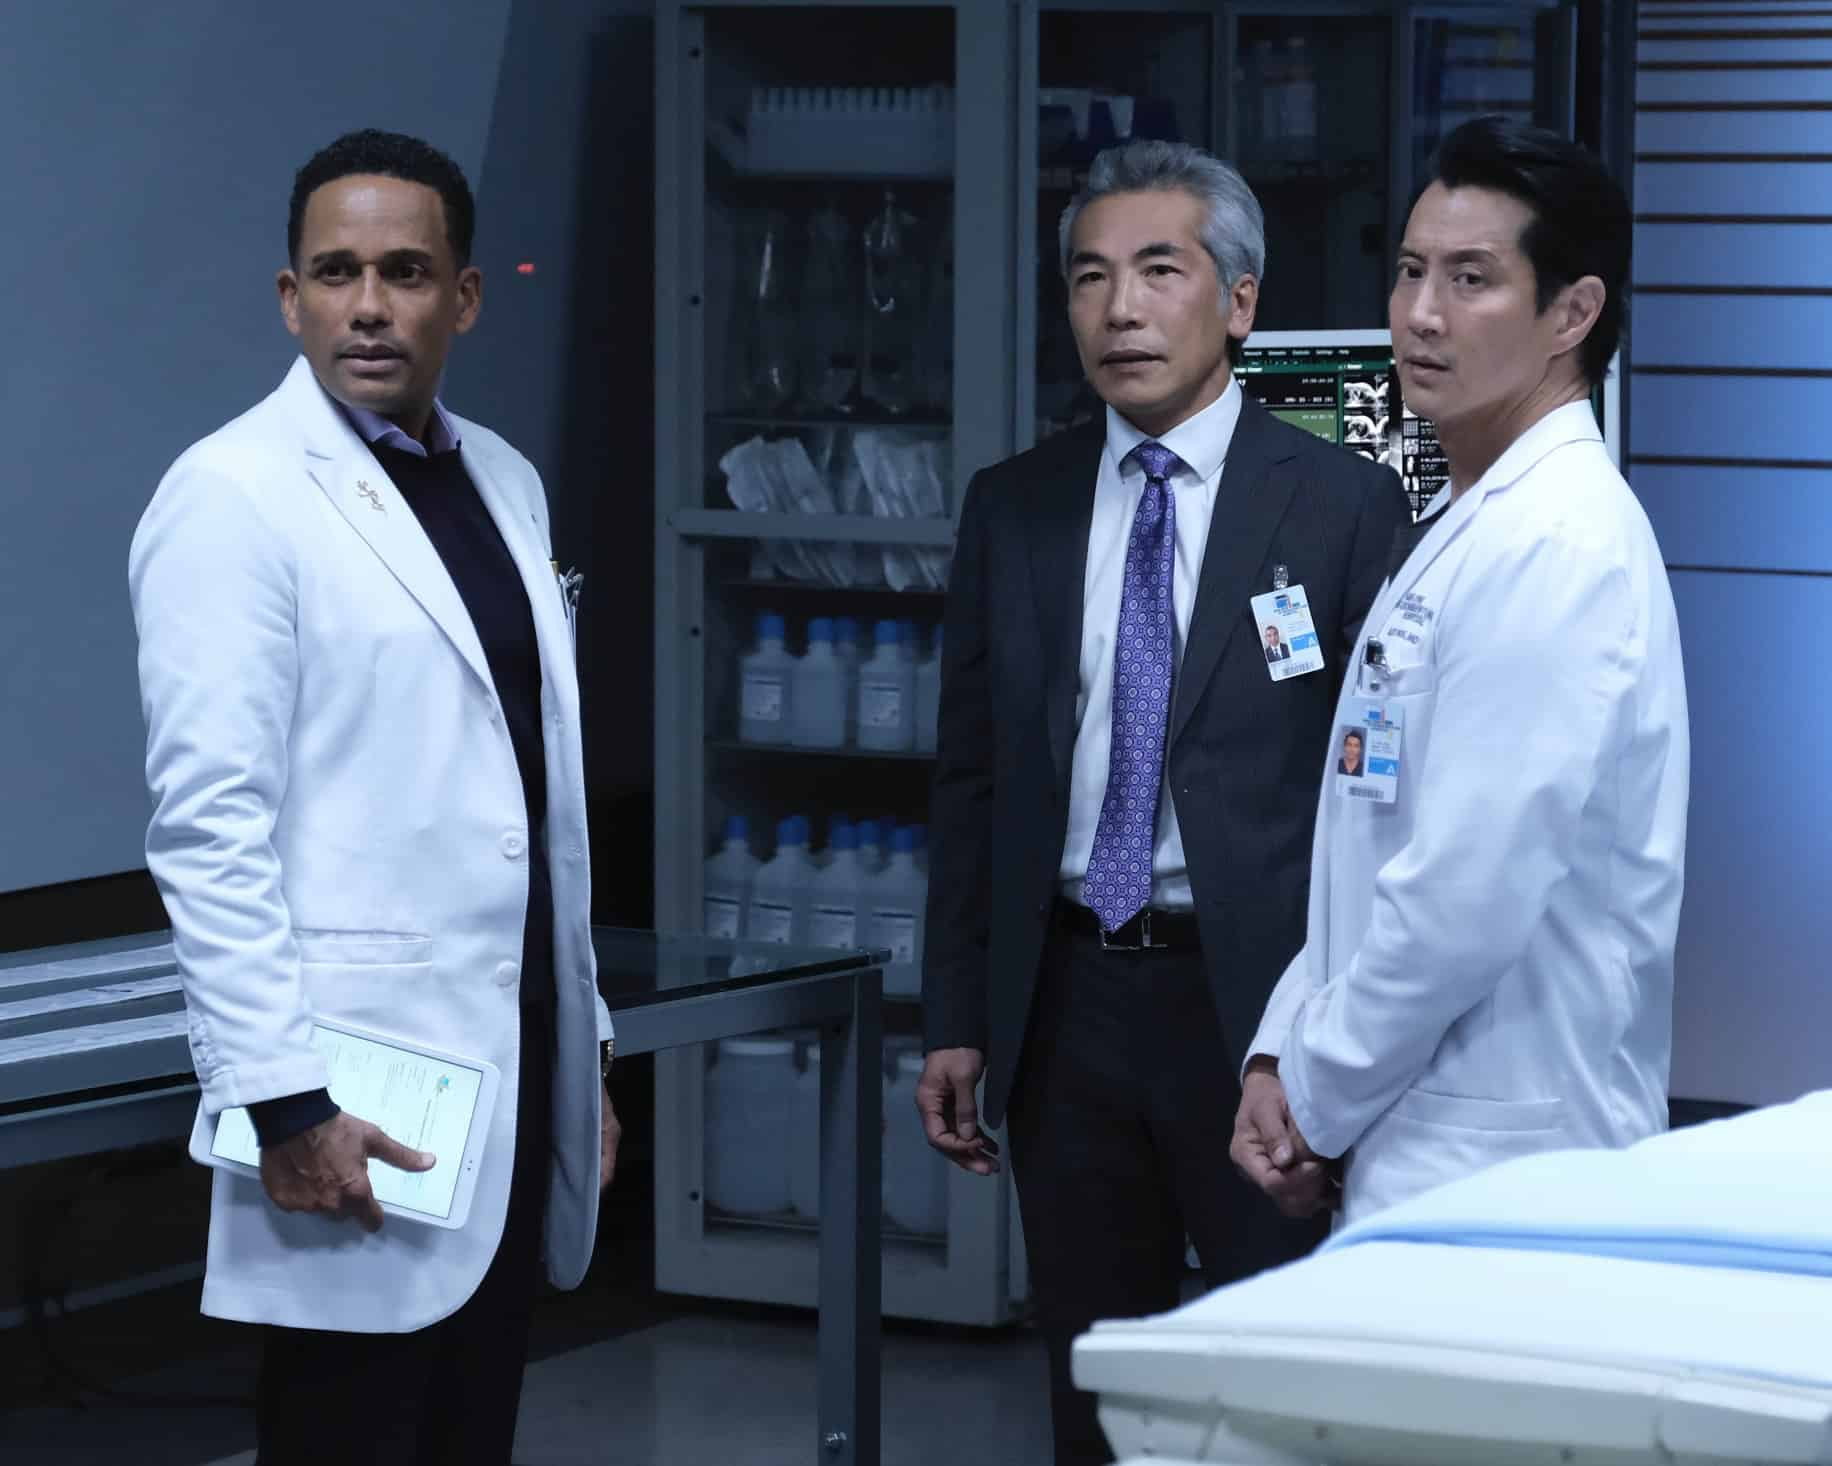 """THE GOOD DOCTOR Season 4 Episode 17 - """"Letting Go"""" – Dr. Claire Brown and the team must face hard truths about what lines they are willing to cross when one of Claire's idols becomes her patient on """"The Good Doctor,"""" MONDAY, MAY 17 (10:00-11:00 p.m. EDT), on ABC. (ABC/Jeff Weddell) HILL HARPER, HIRO KANAGAWA, WILL YUN LEE"""